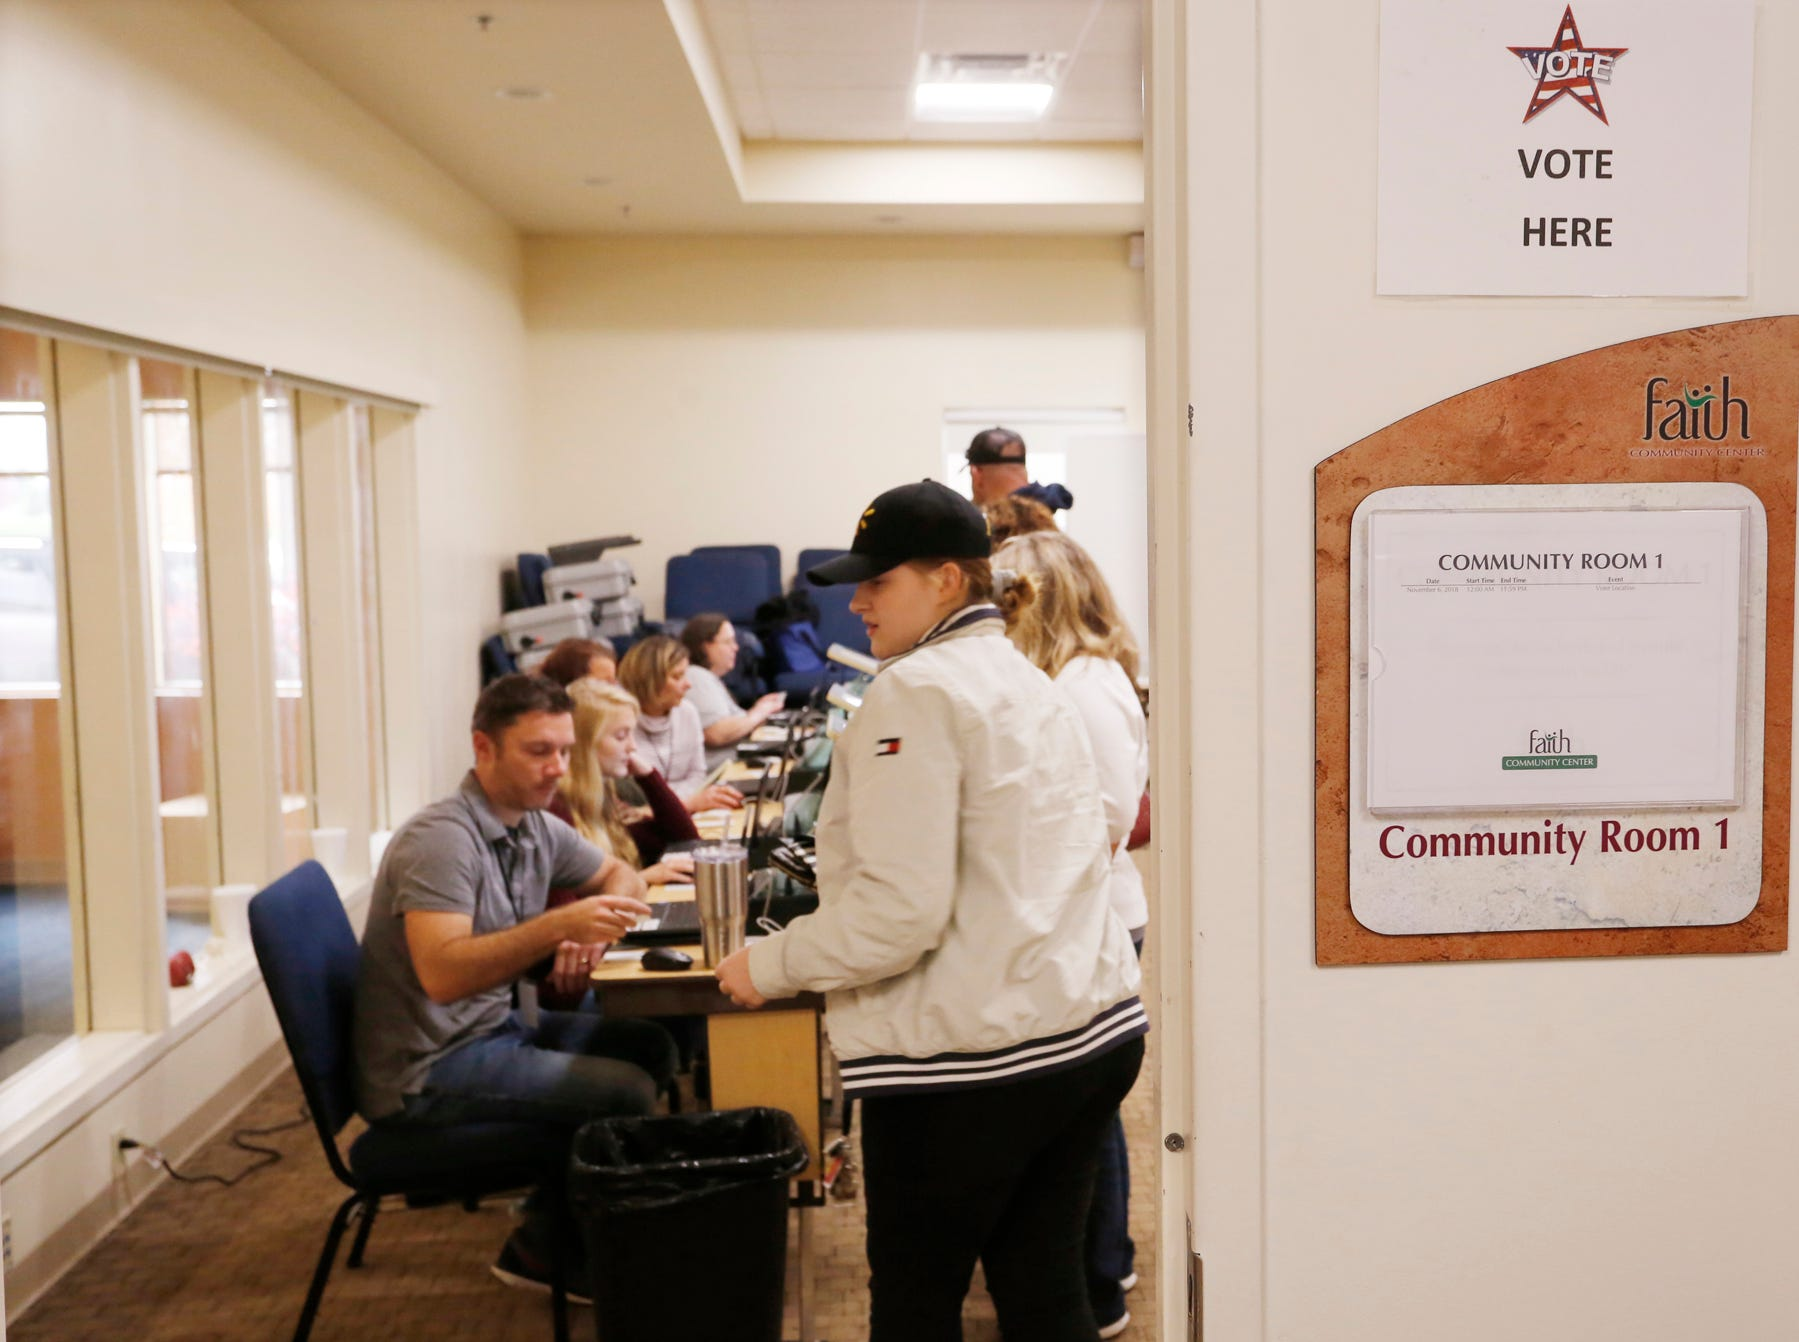 Residents check in to vote at Faith Community Center Tuesday, November 6, 2018, in Lafayette.